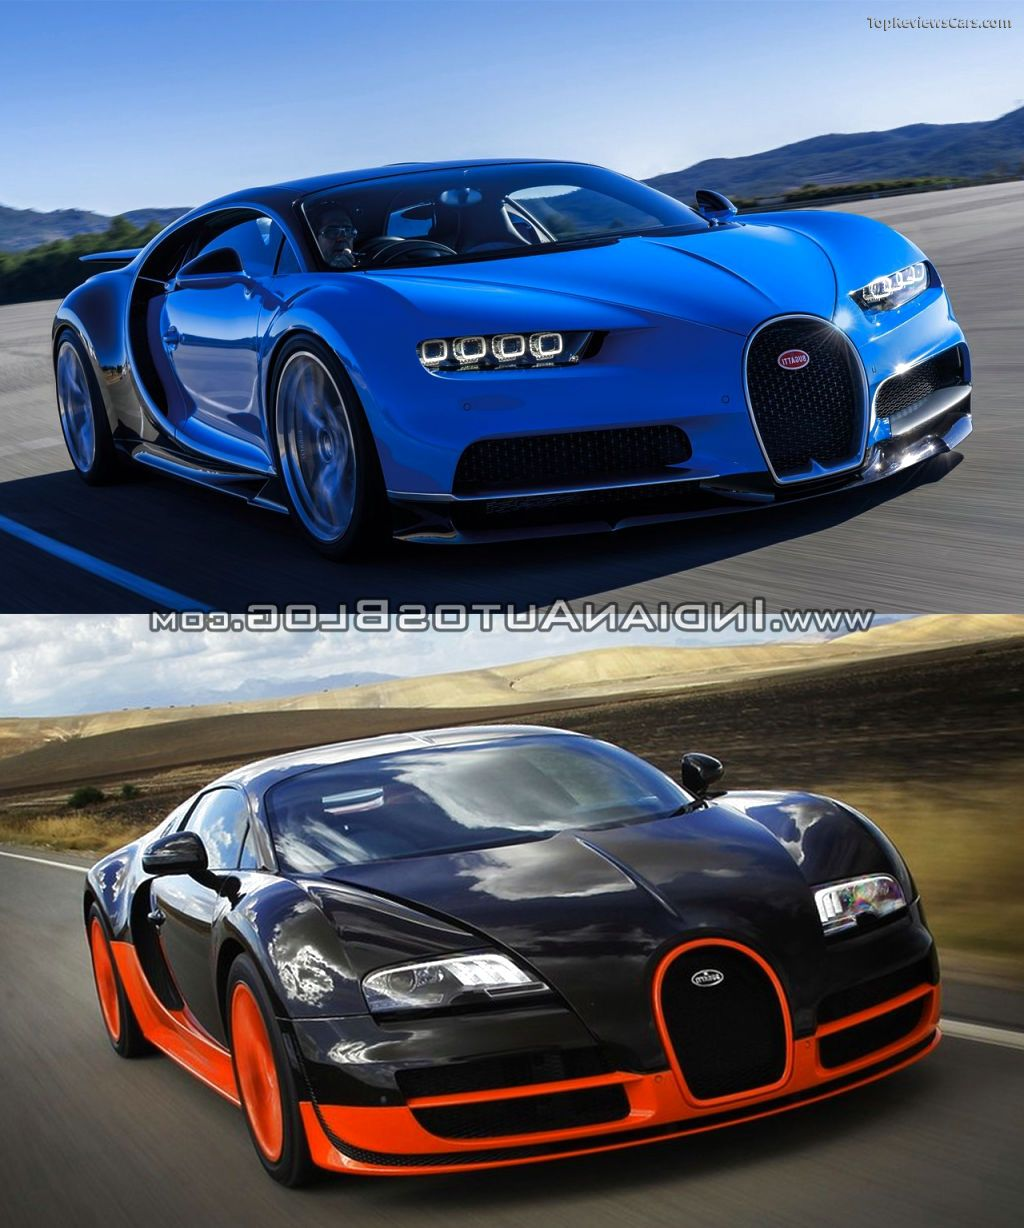 Bugatti Chiron Grand Sport Roadster Rendering Looks Cool: 2020 Bugatti Chiron Grand Sport Cool Design Wallpaper Wide